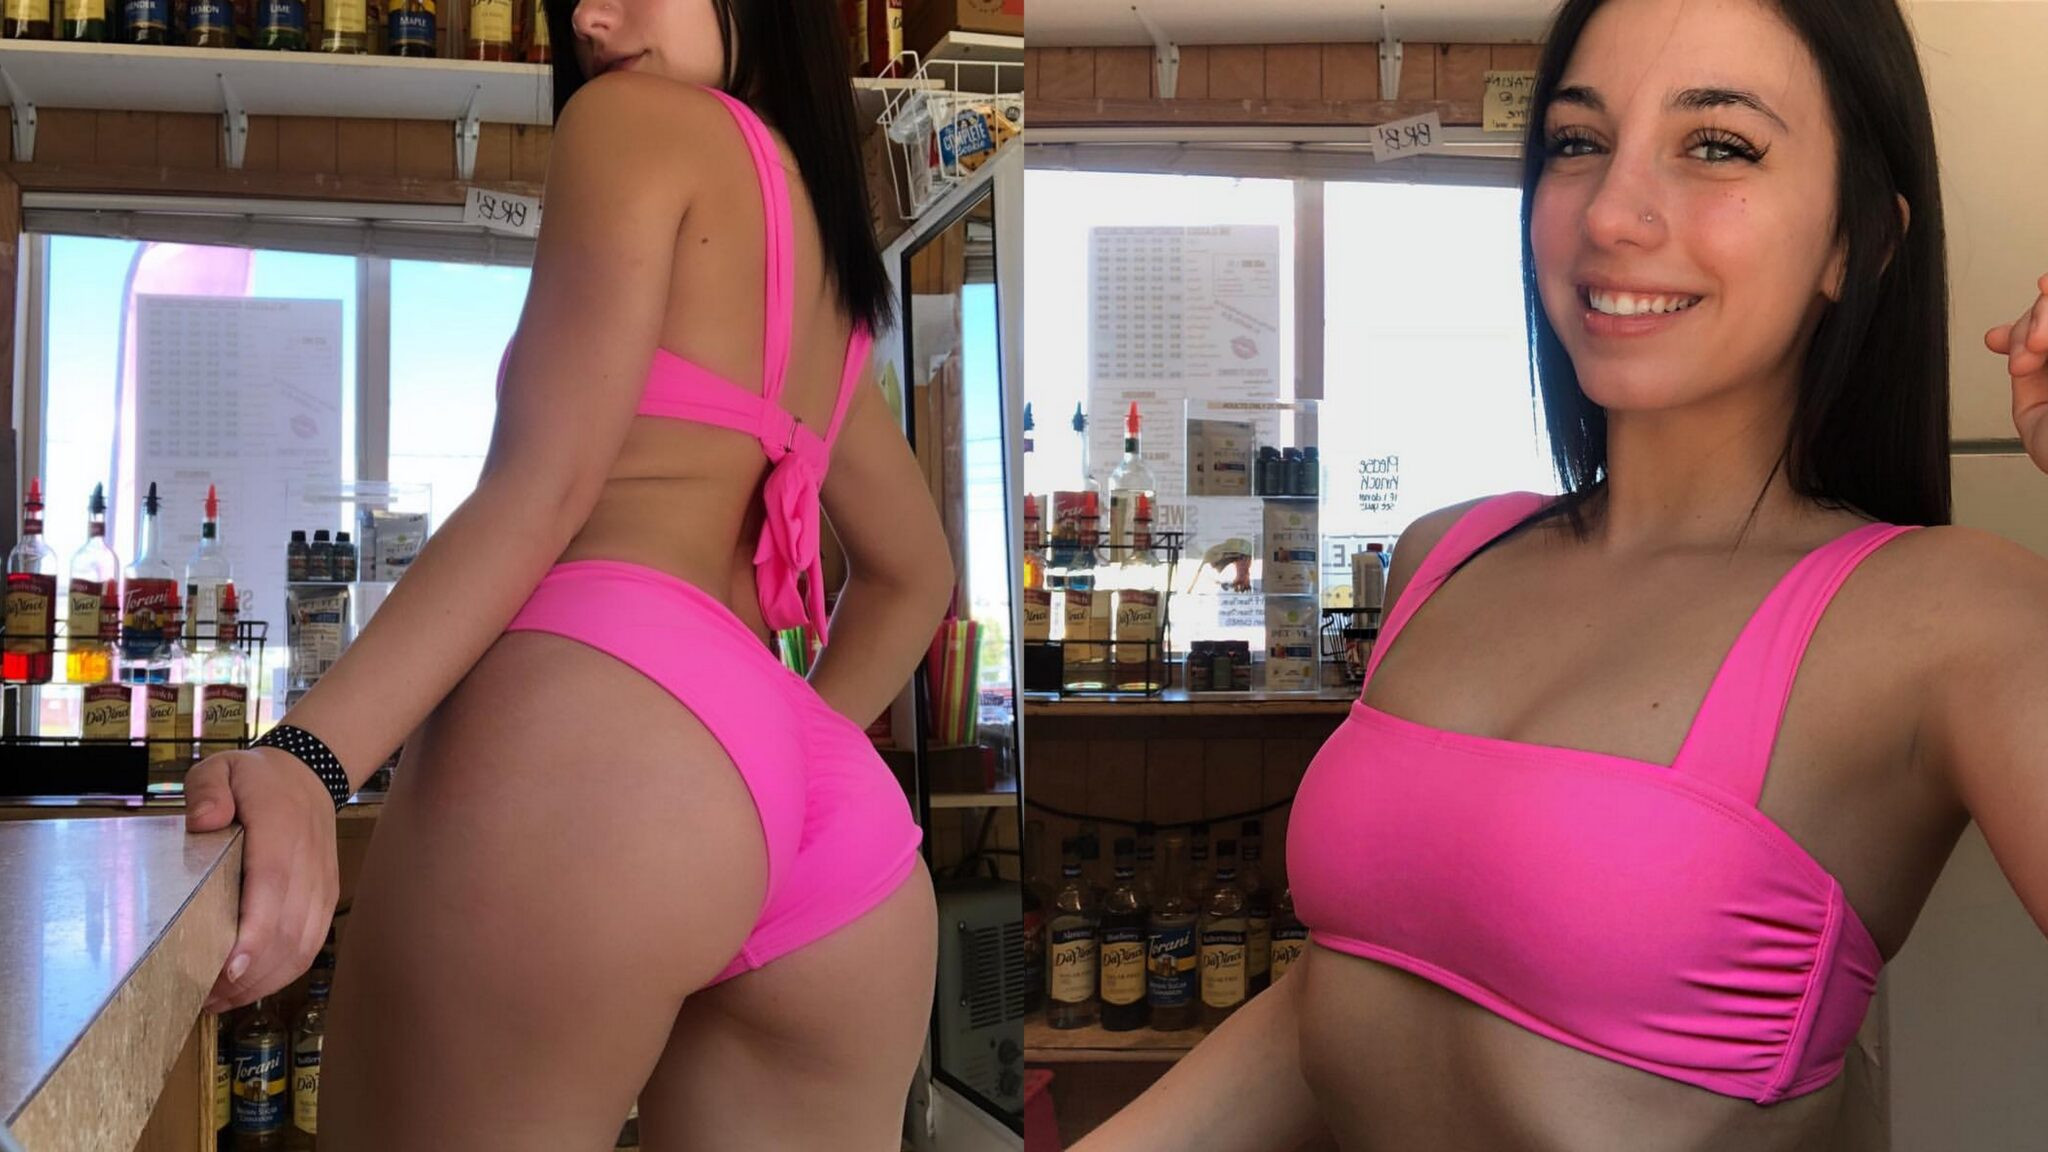 baristaalix Onlyfans Leaked Nude Photos fappenings.com 13